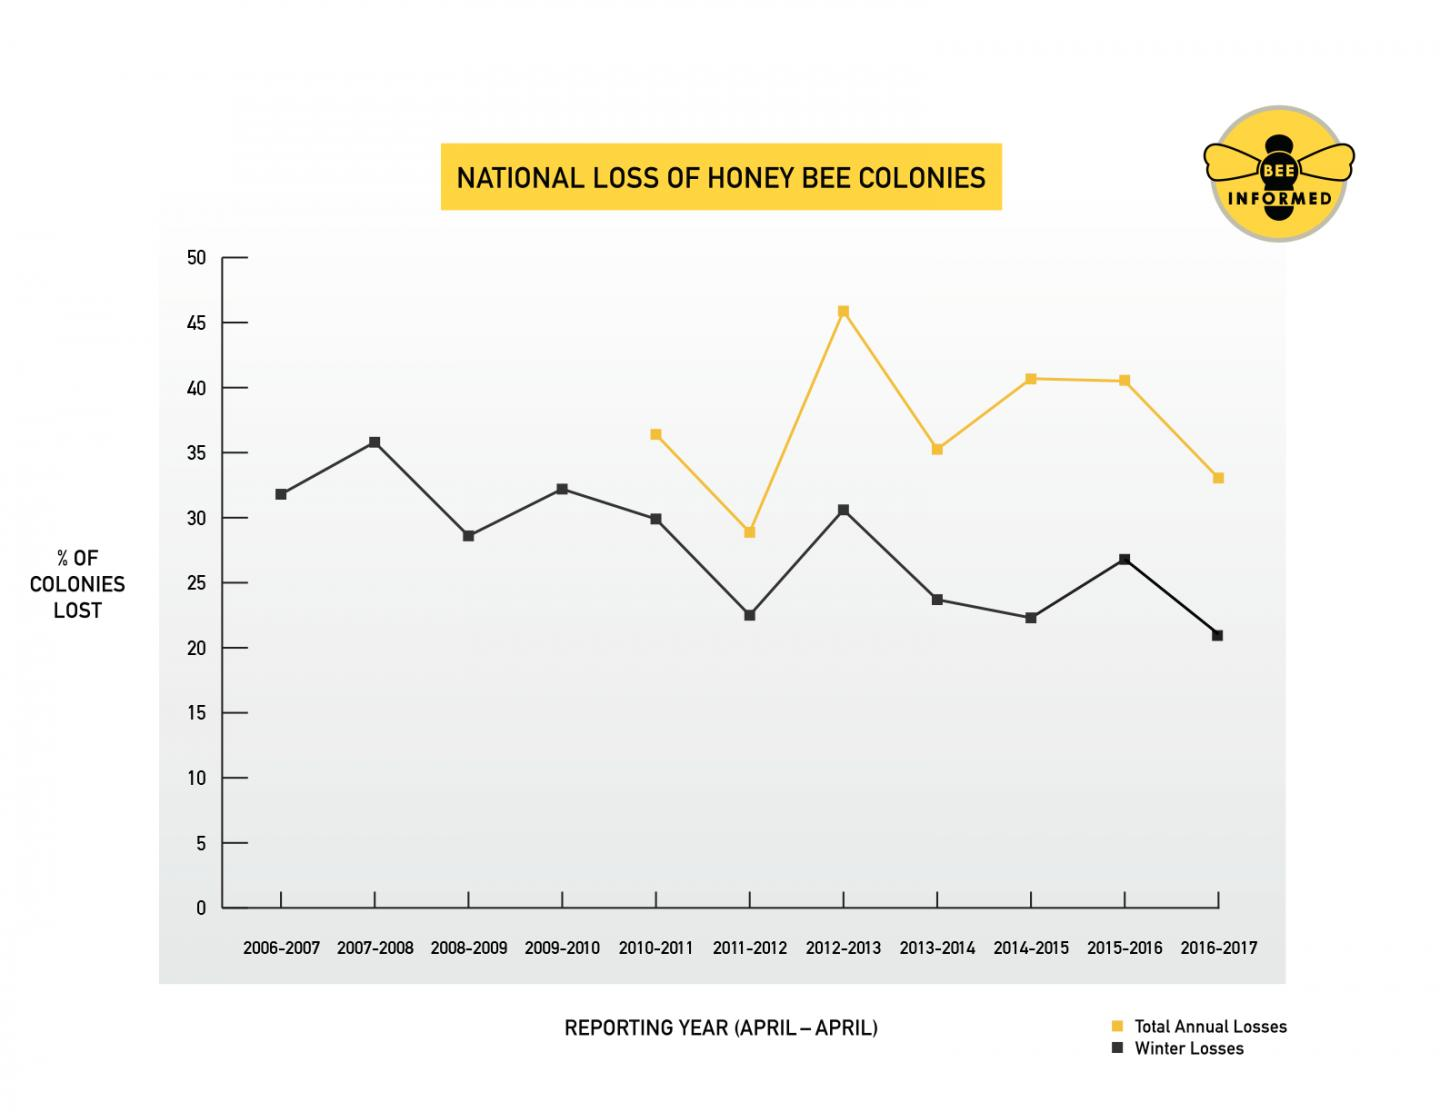 American beekeepers lost 33 percent of bees in 2016-17